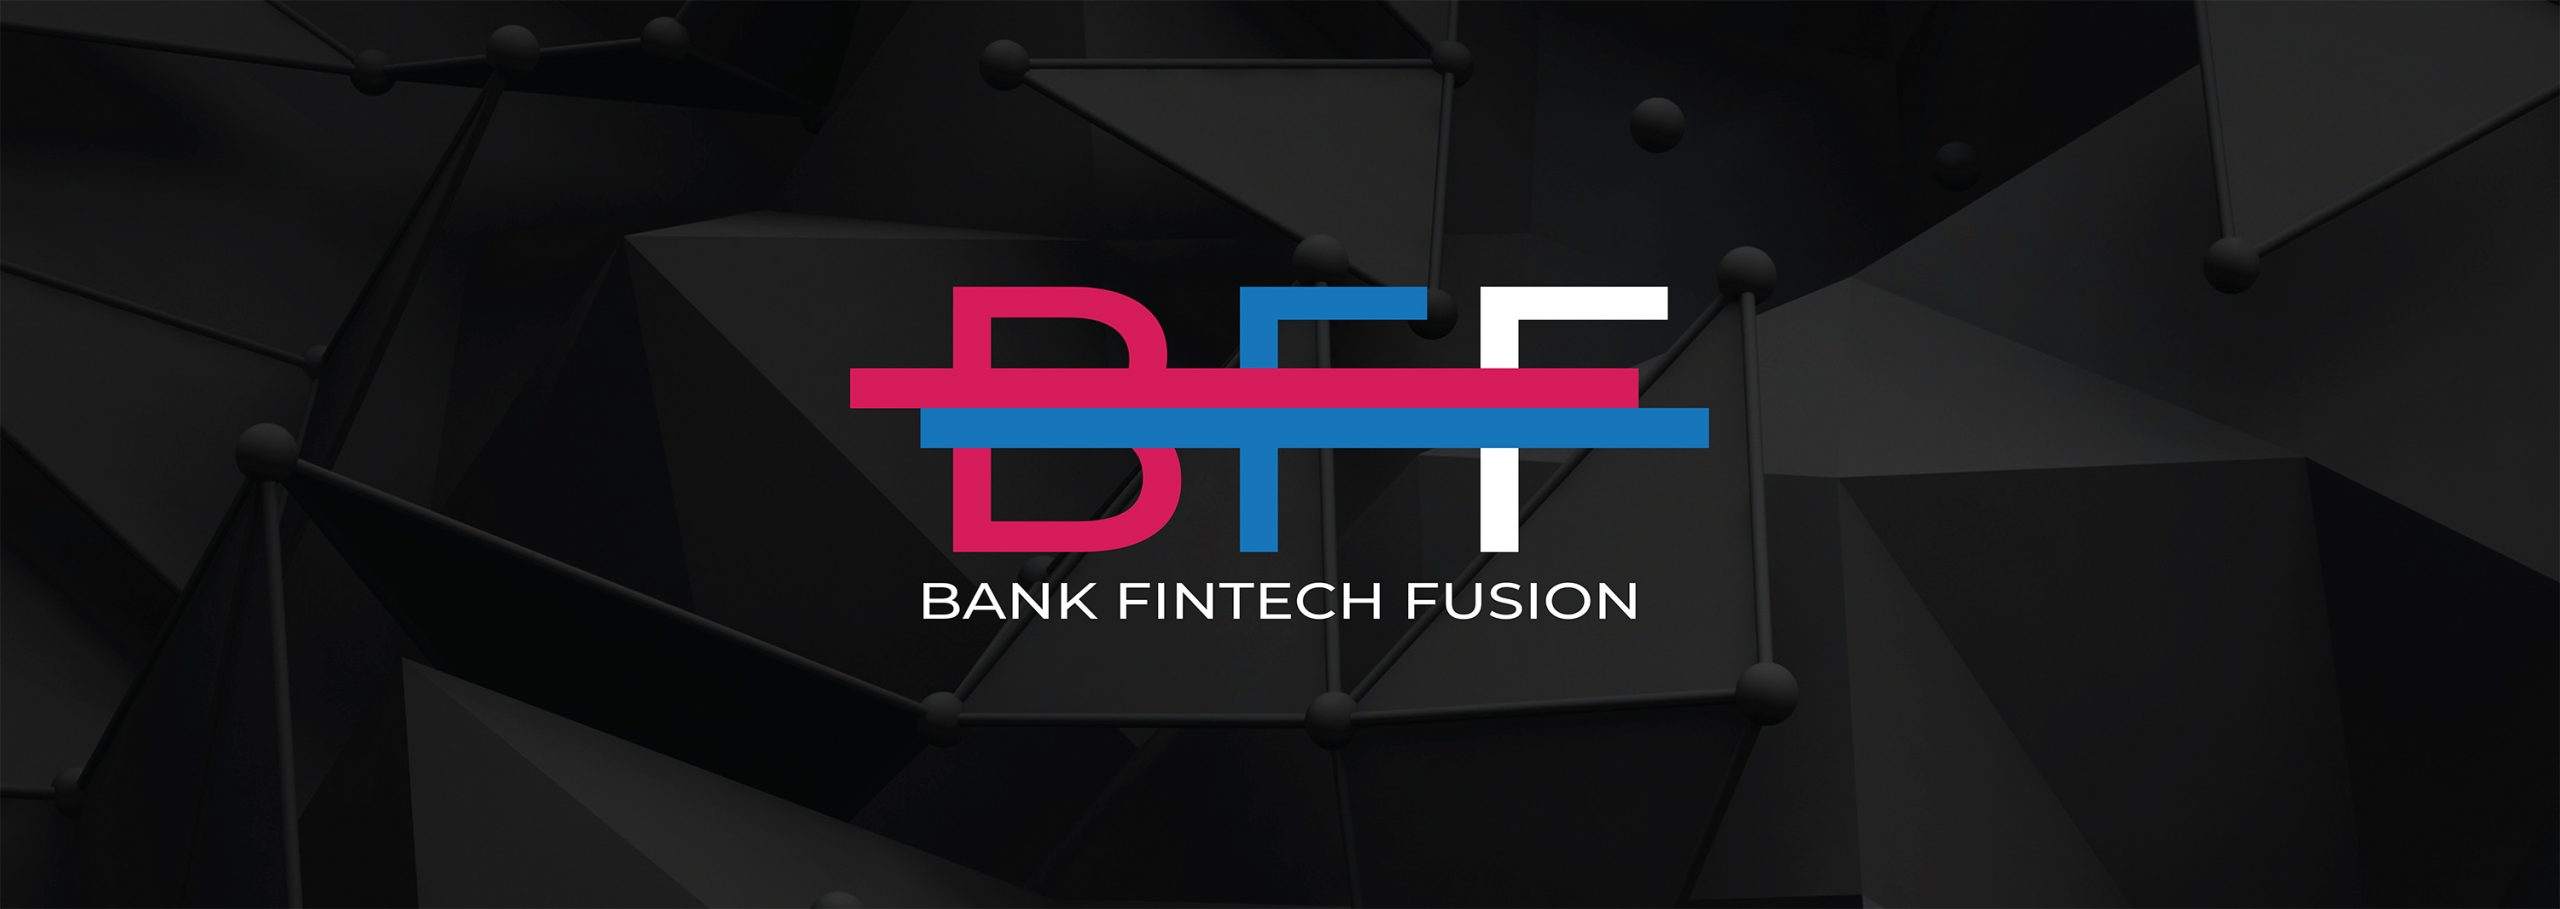 Bank Fintech Fusion page